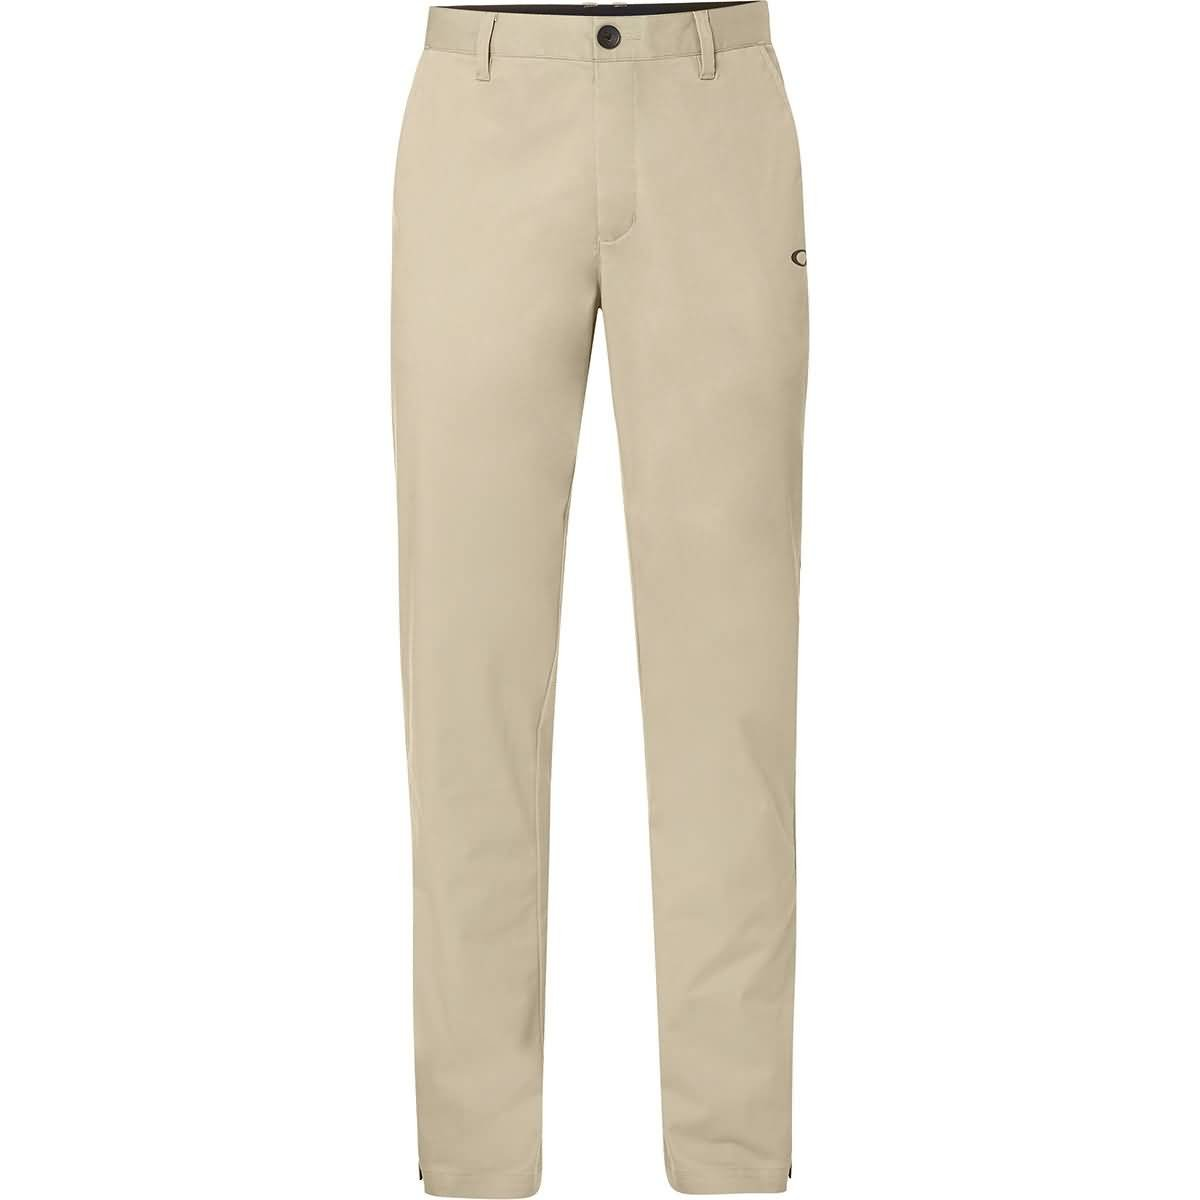 Oakley Men's Chino Icon Golf Pants,30,Rye by Oakley